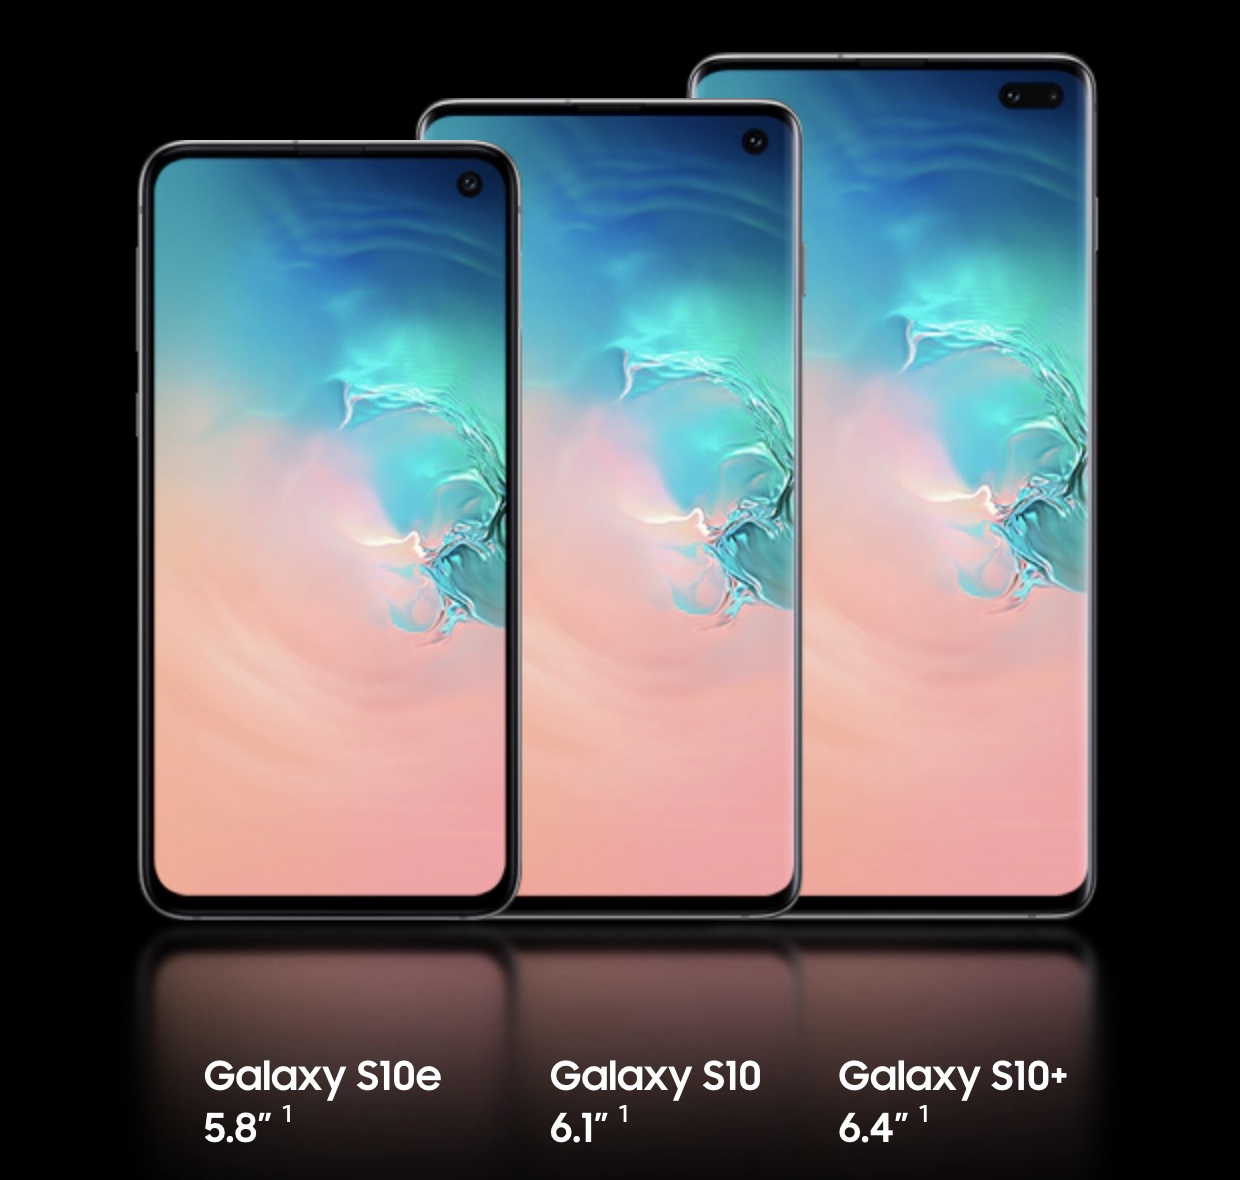 Samsung Galaxy S10, S10e, and S10+